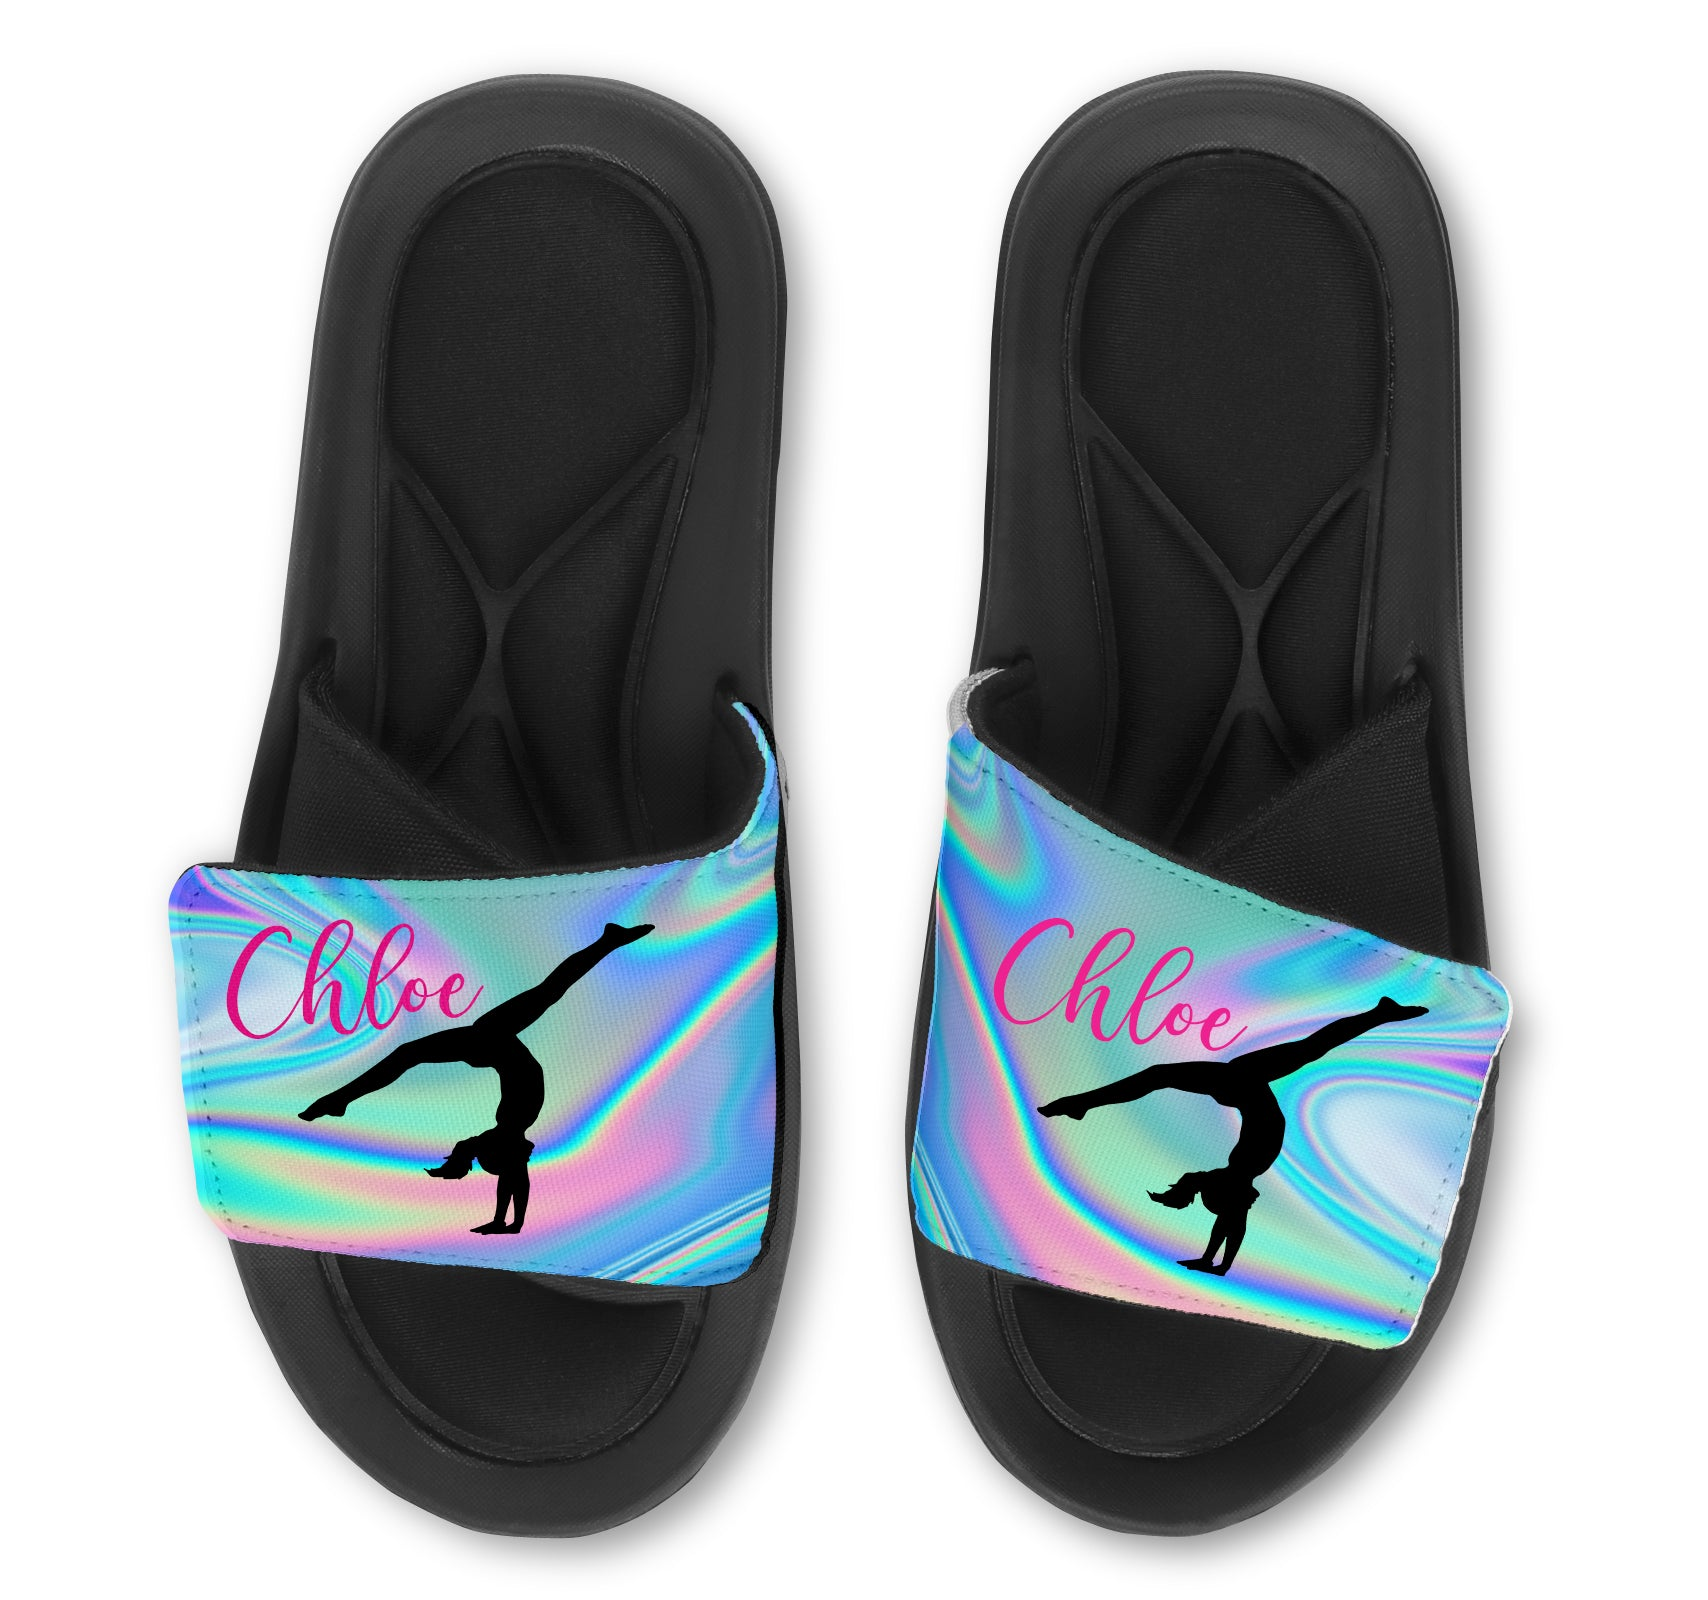 Gymnast Bubble Slides - Customize with Your Name